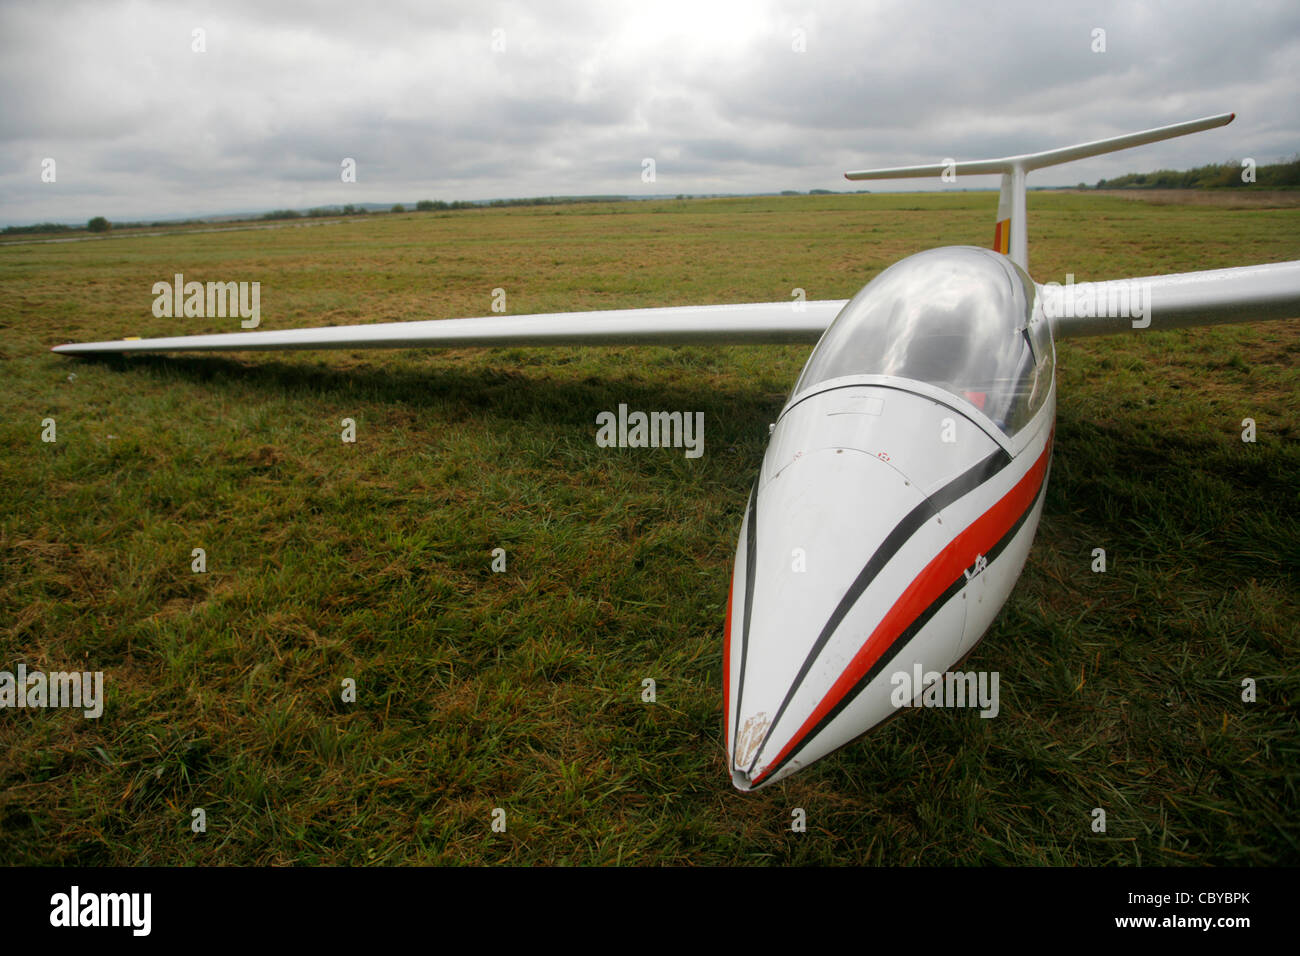 A glider resting on a field - Stock Image